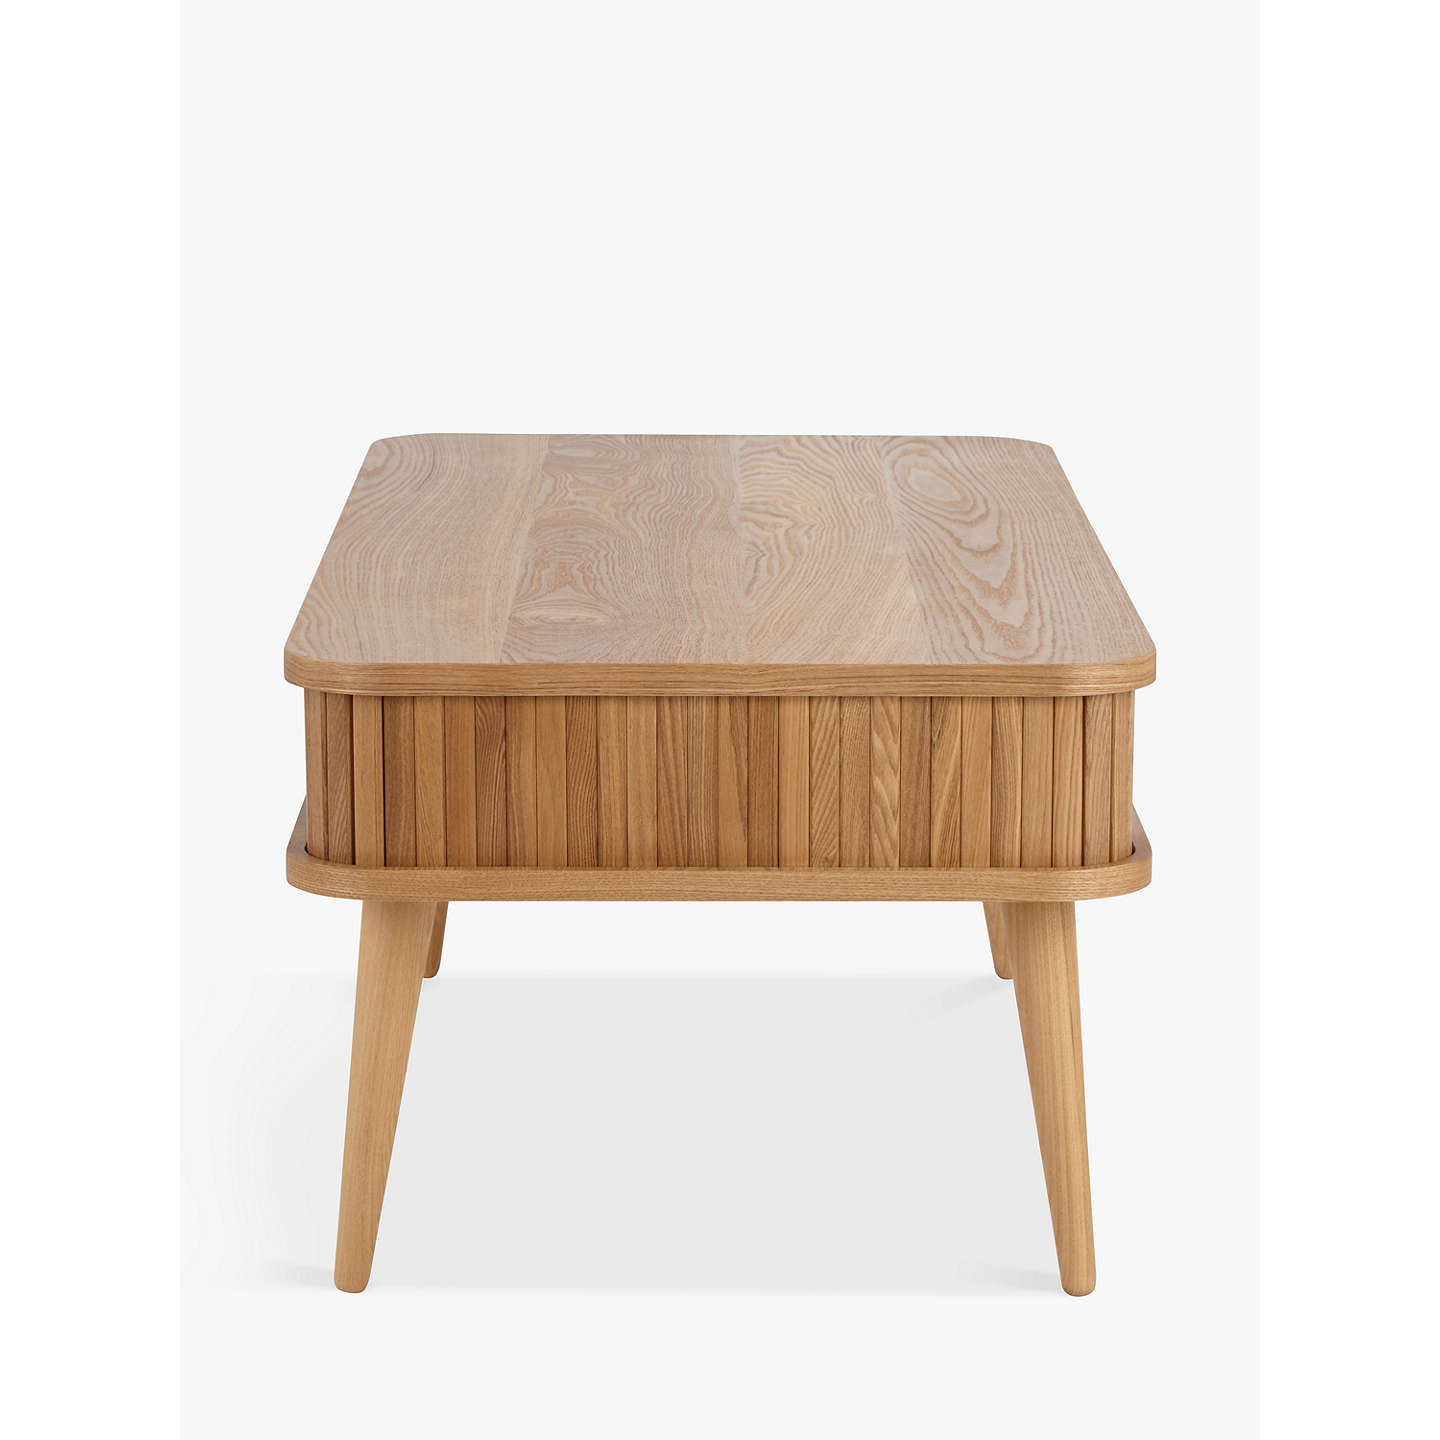 John lewis grayson coffee table at john lewis for John lewis chinese furniture